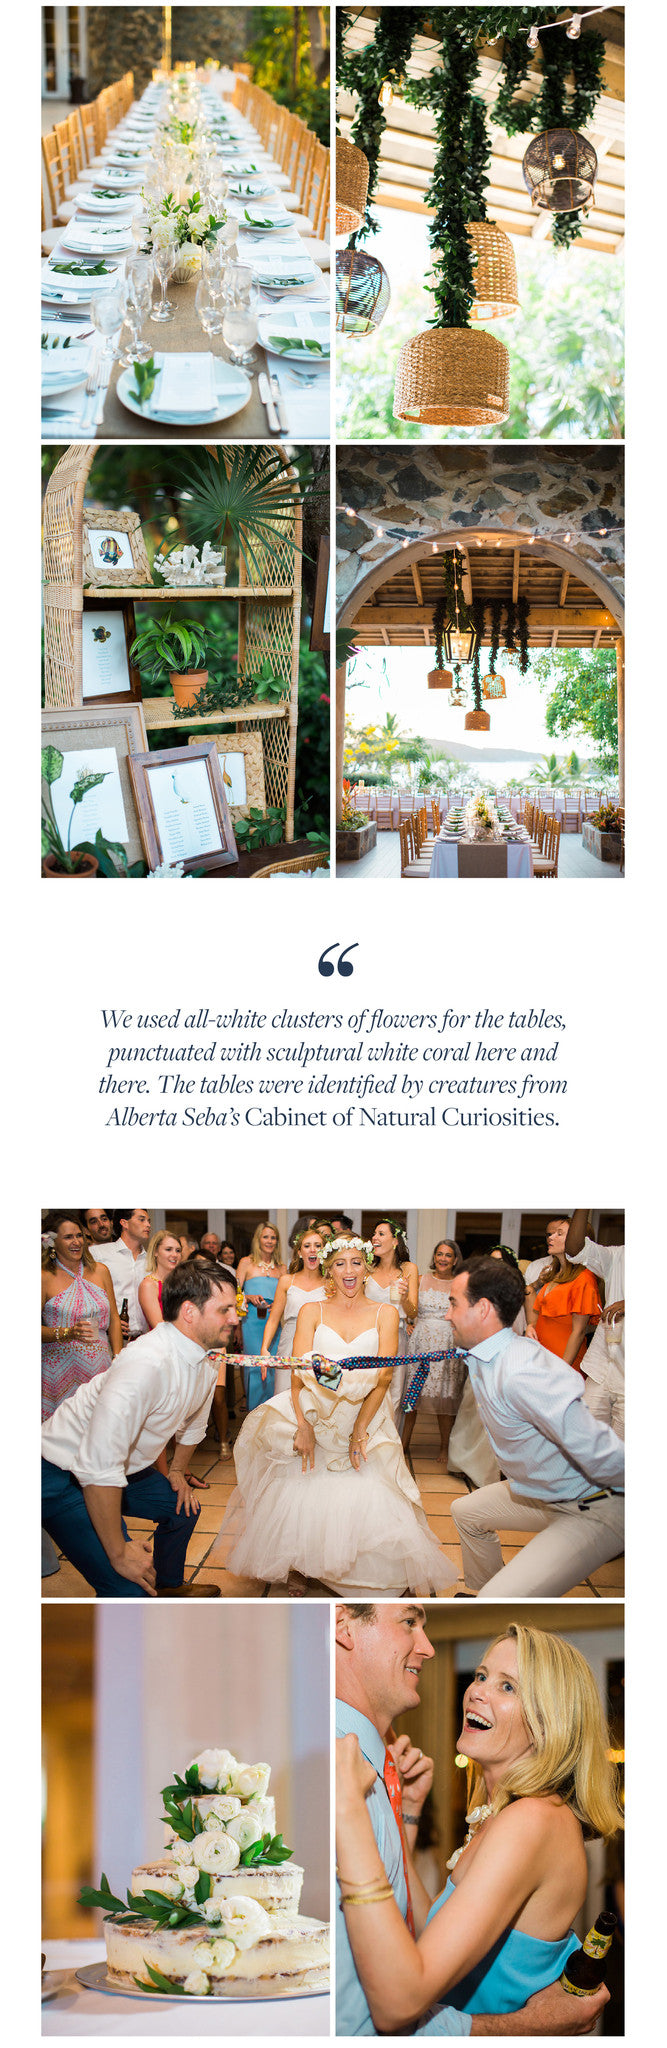 We used all-white clusters of flowers for the tables, punctuated with sculptural white coral here and there. The tables were identified by creatures from Alberta Seba's Cabinet of Natural Curiosities.